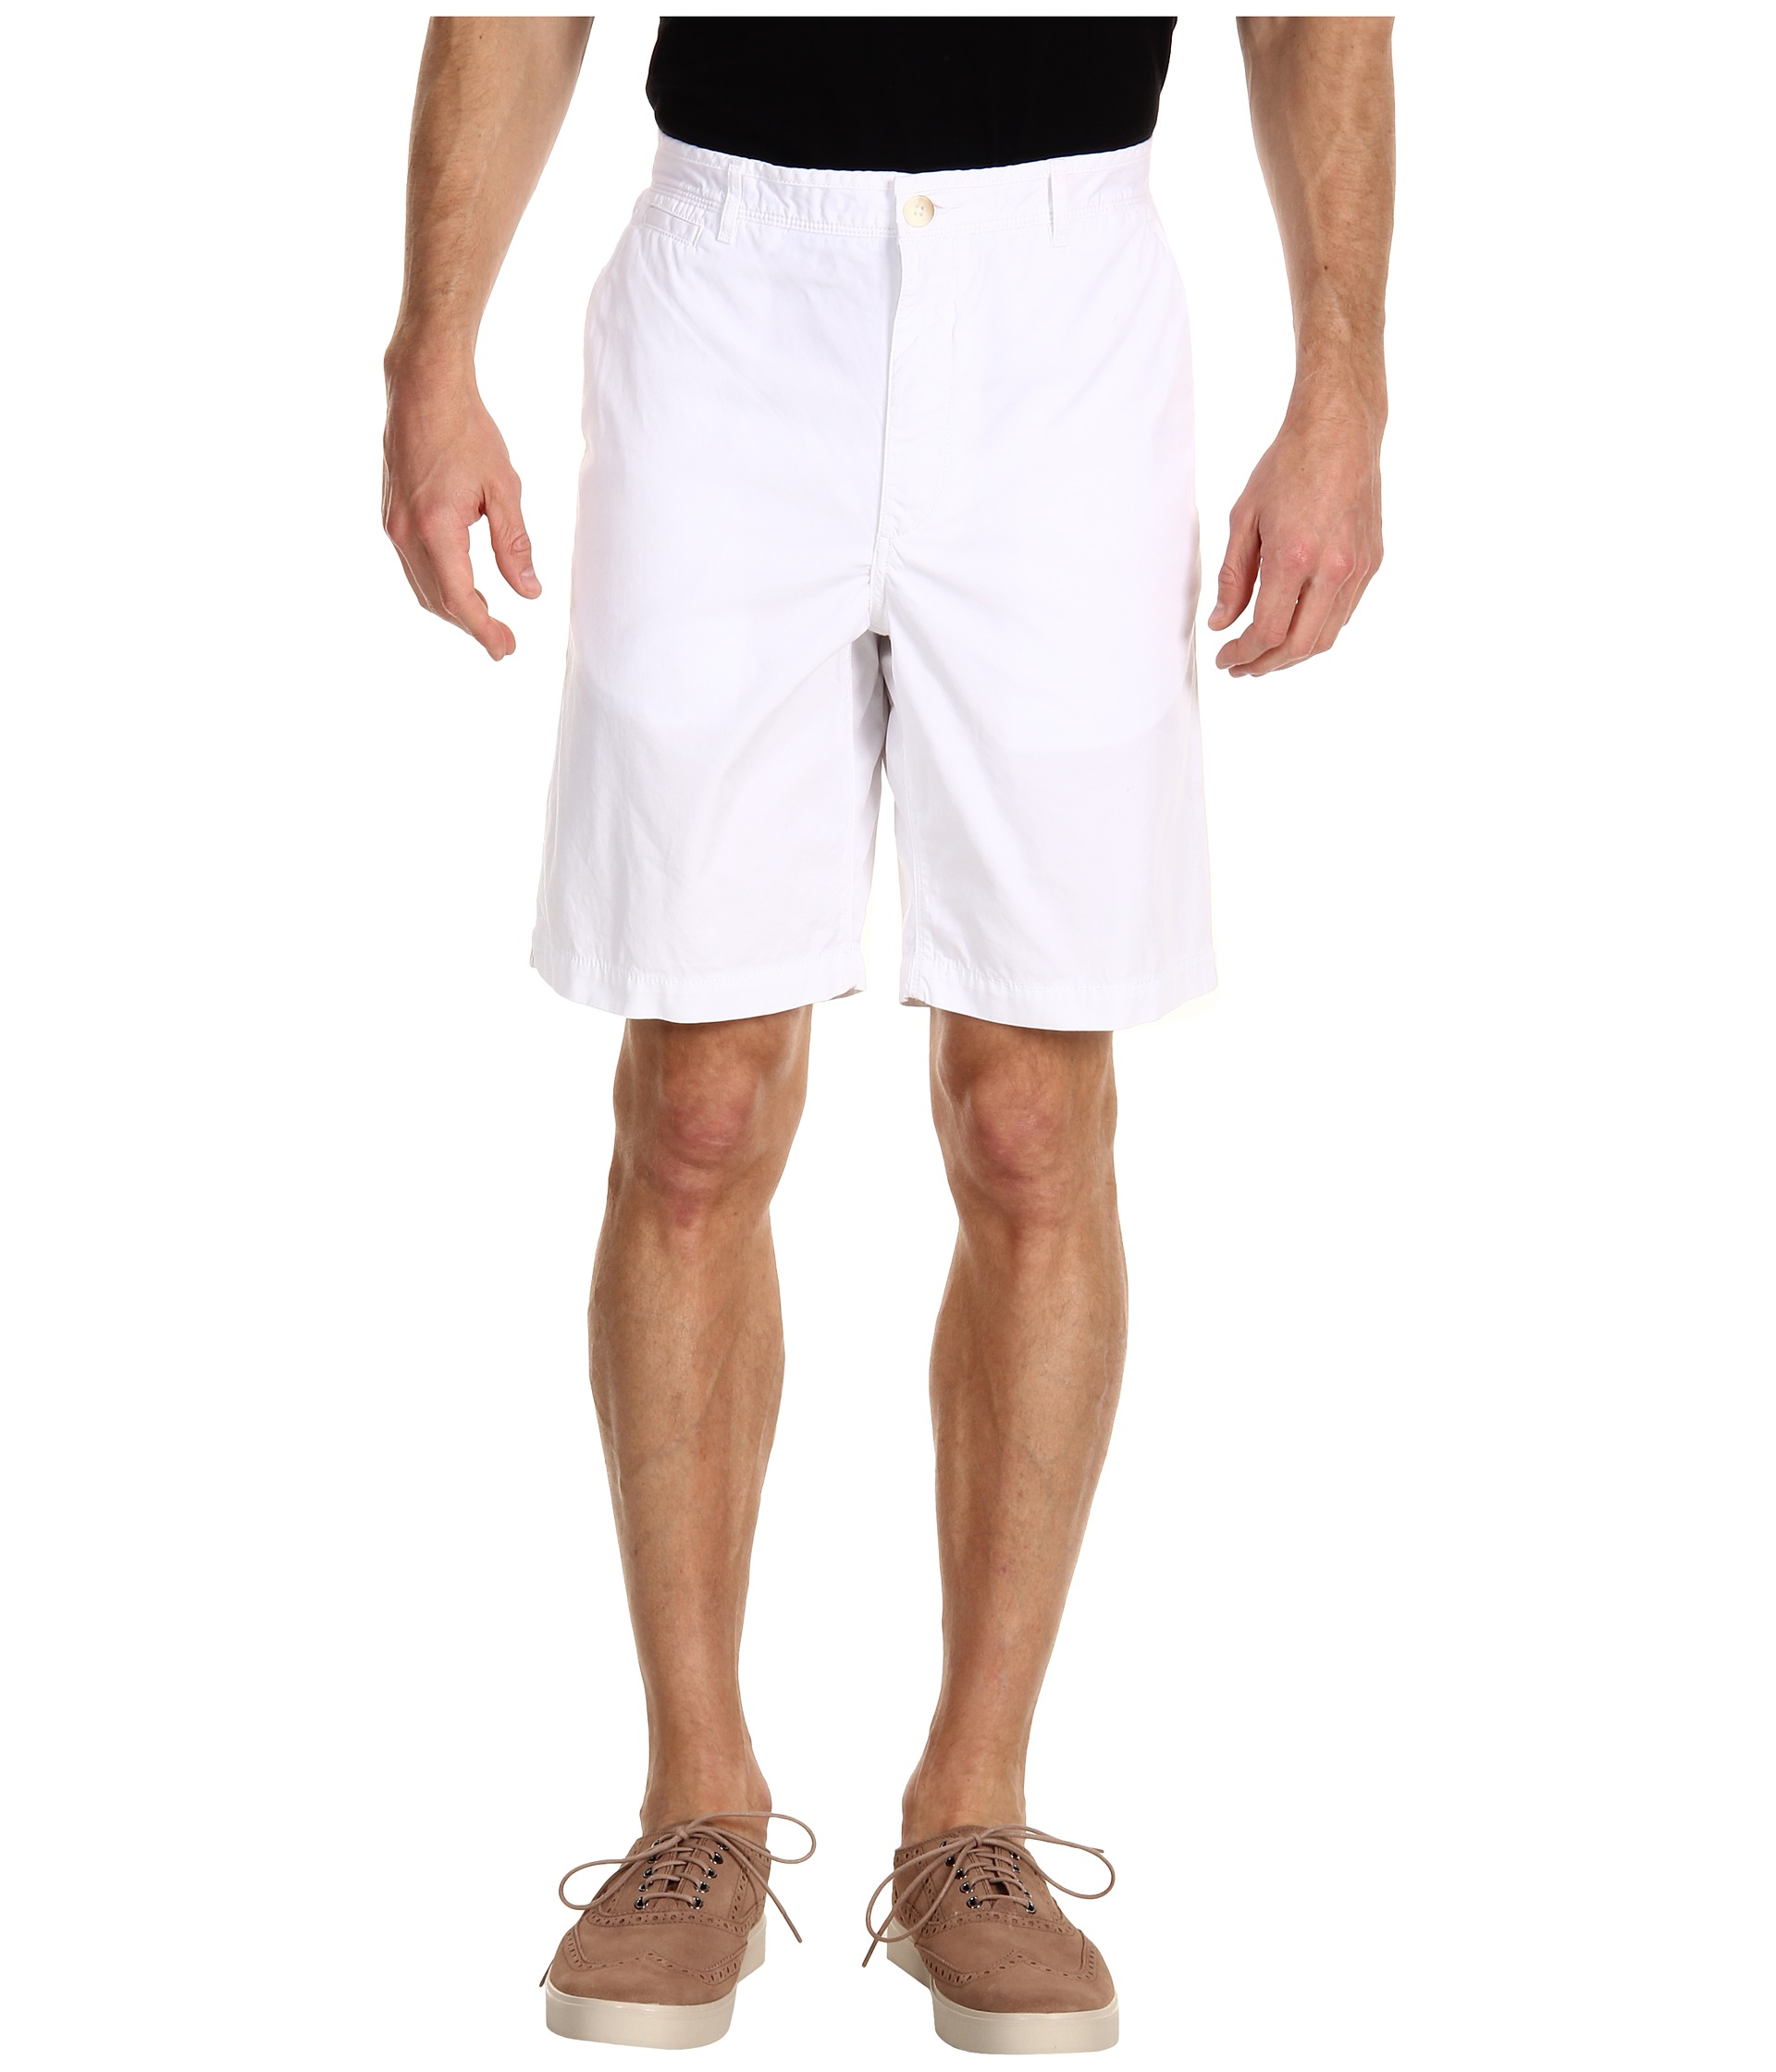 Buy Cheap Perry Ellis Solid Cotton Short Bright White